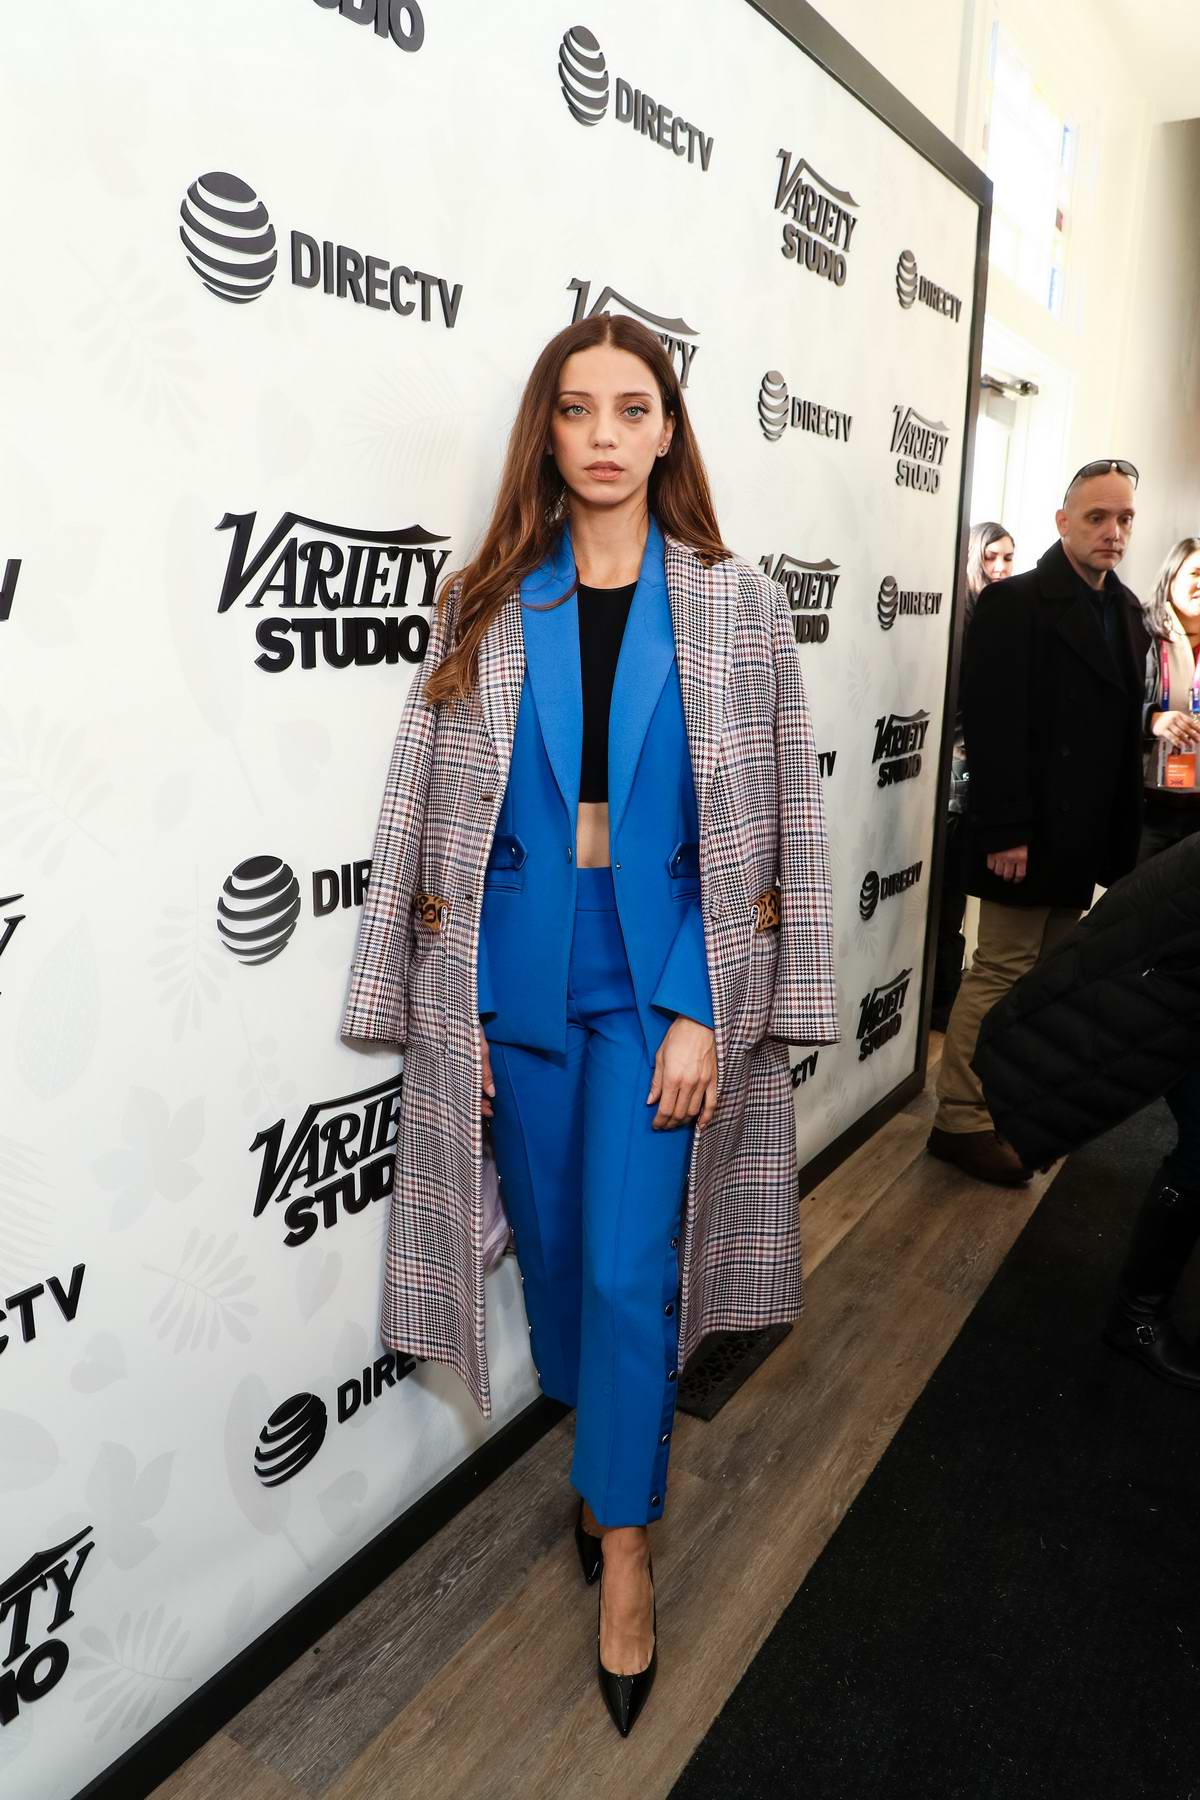 Angela Sarafyan attends Variety Sundance Studio Presented by AT&T during Sundance Film Festival in Park City, Utah